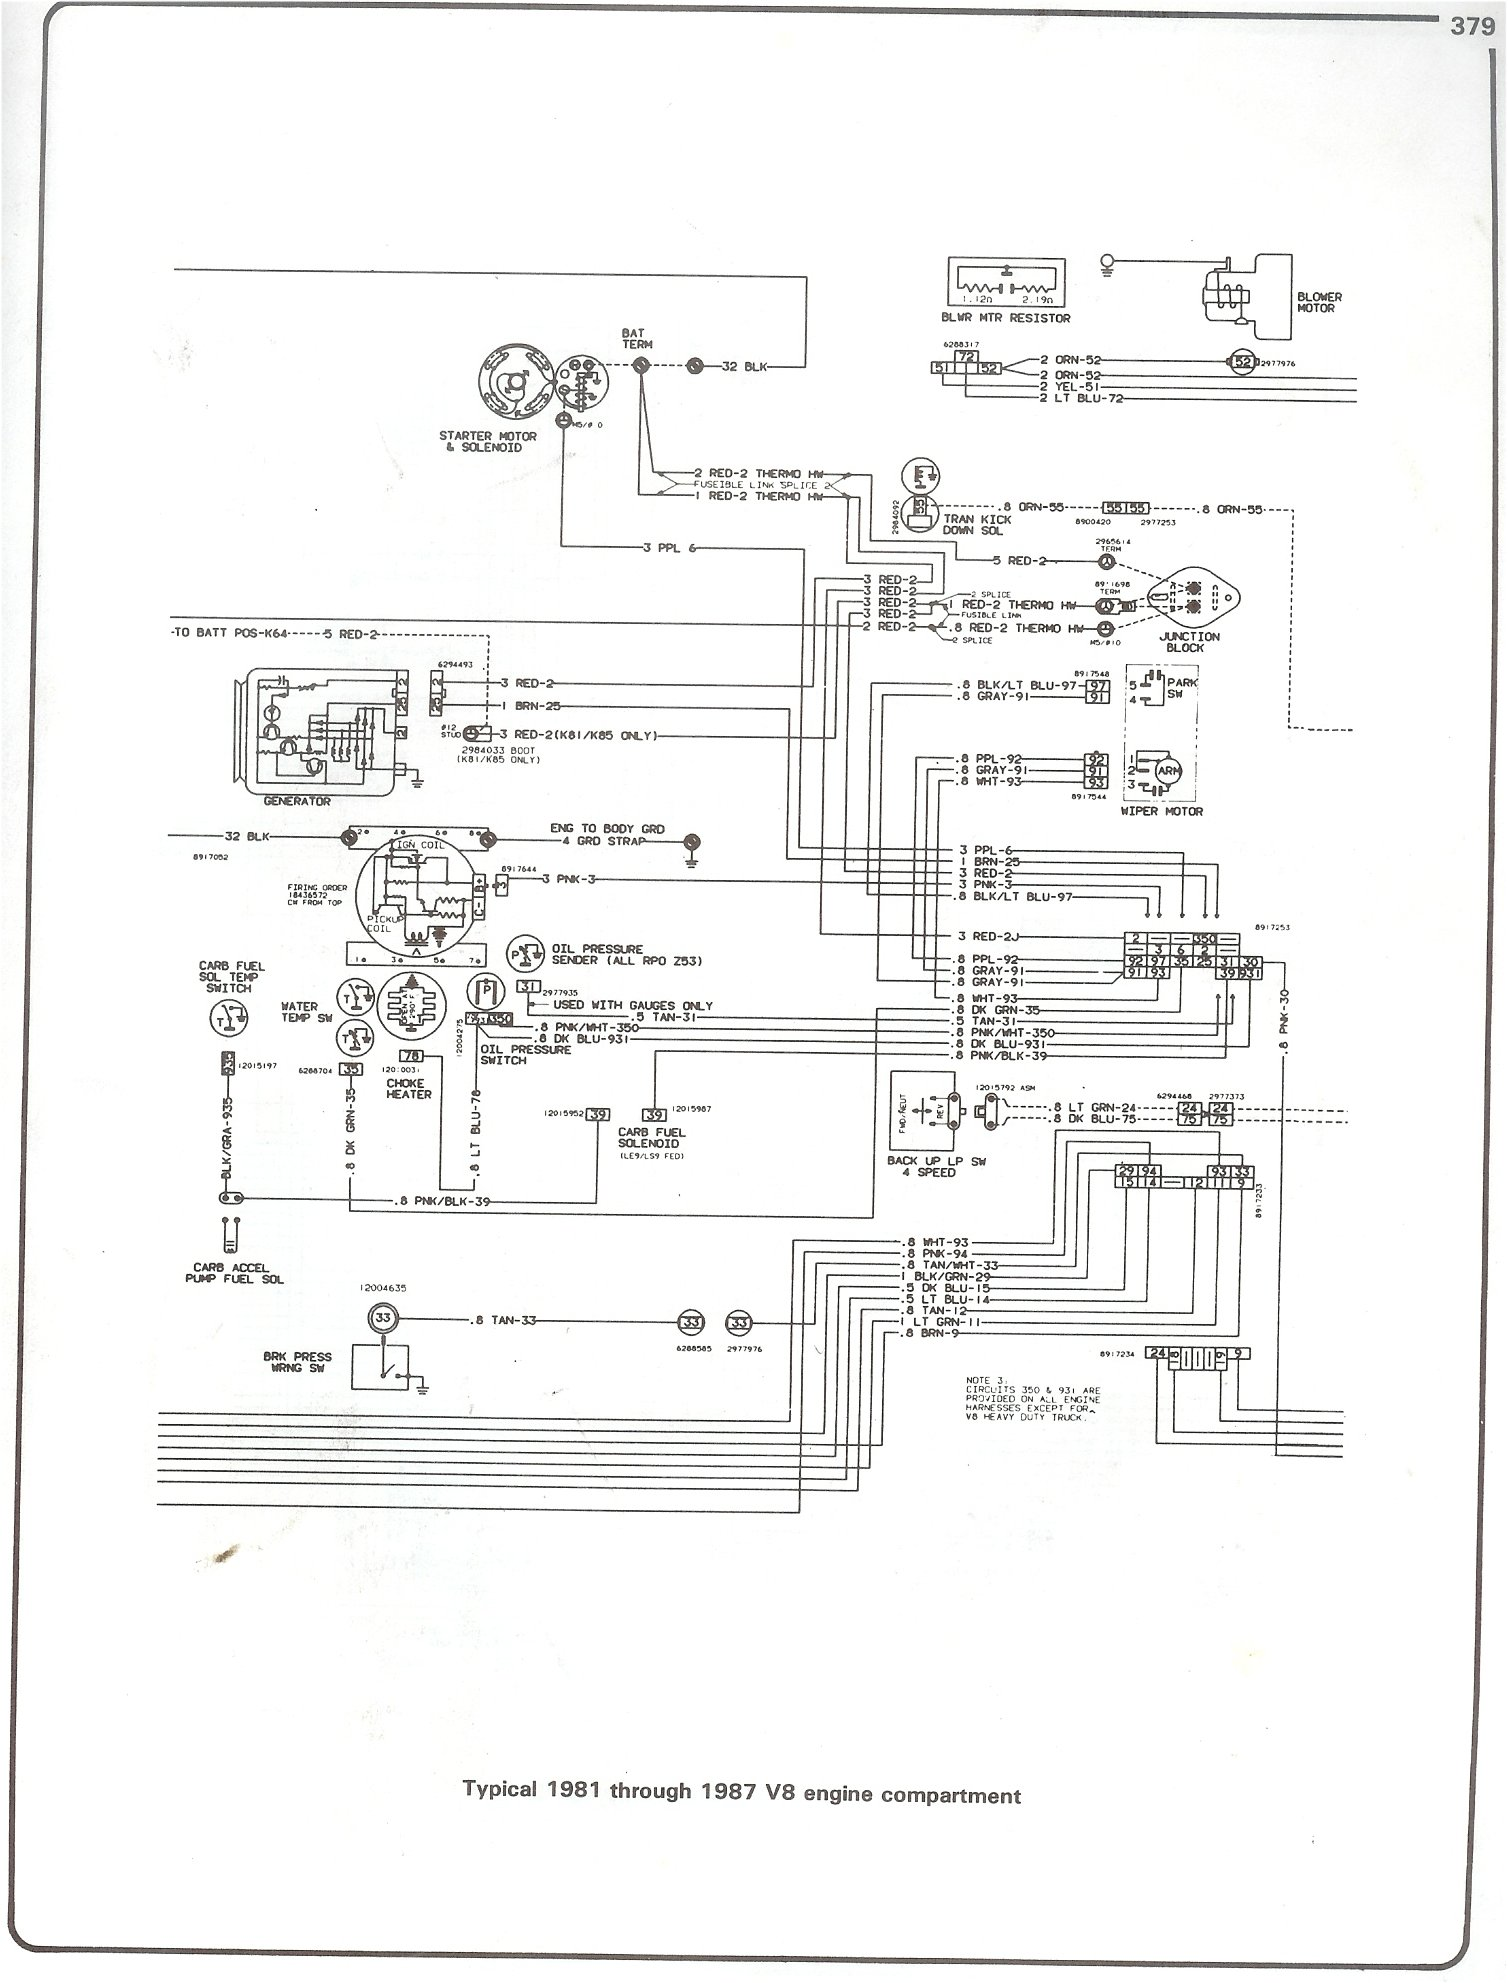 Chevy Battery Wiring Electrical Diagrams Schematics Street Rod Fuse Box Under Hood 87 Diagram Schemes 1953